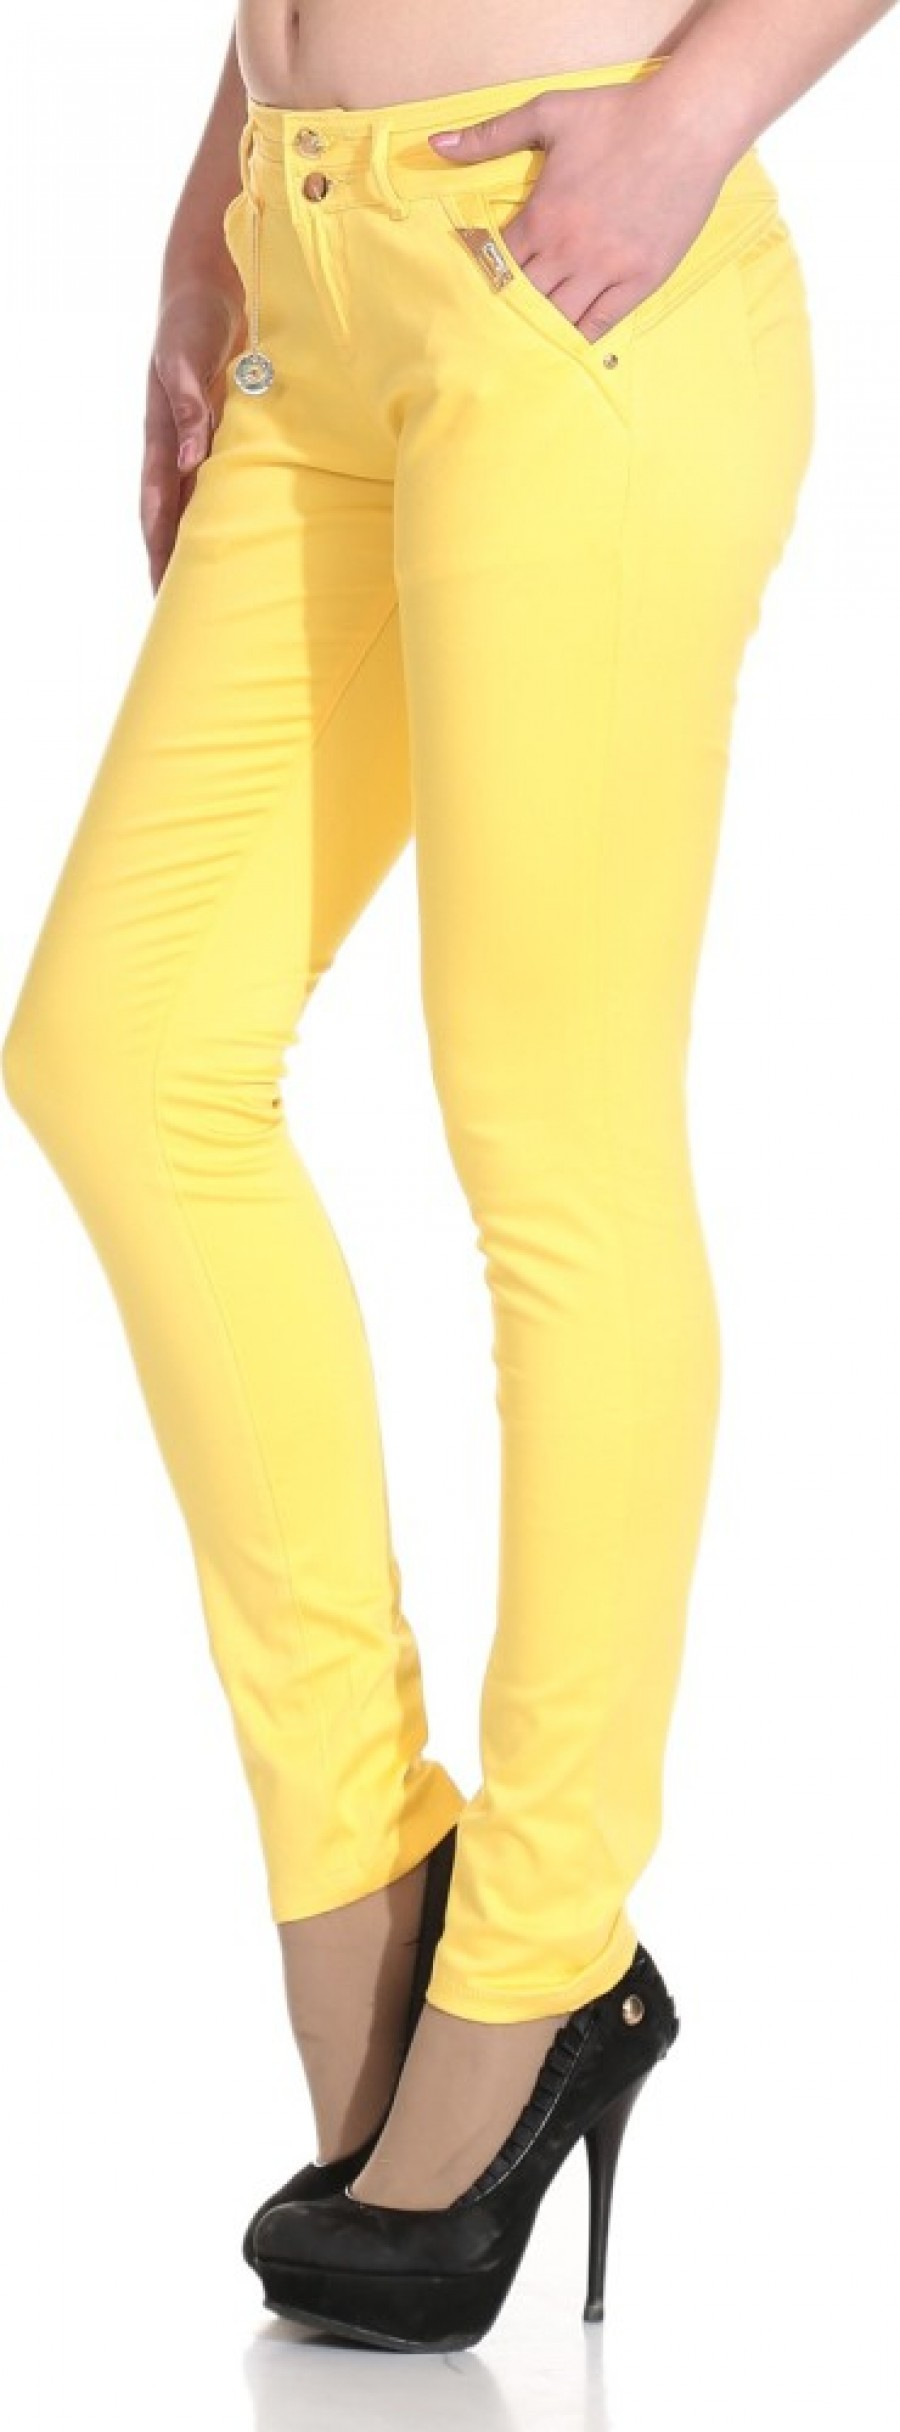 Buy See Coral Slim Fit Women Yellow Jeans Online